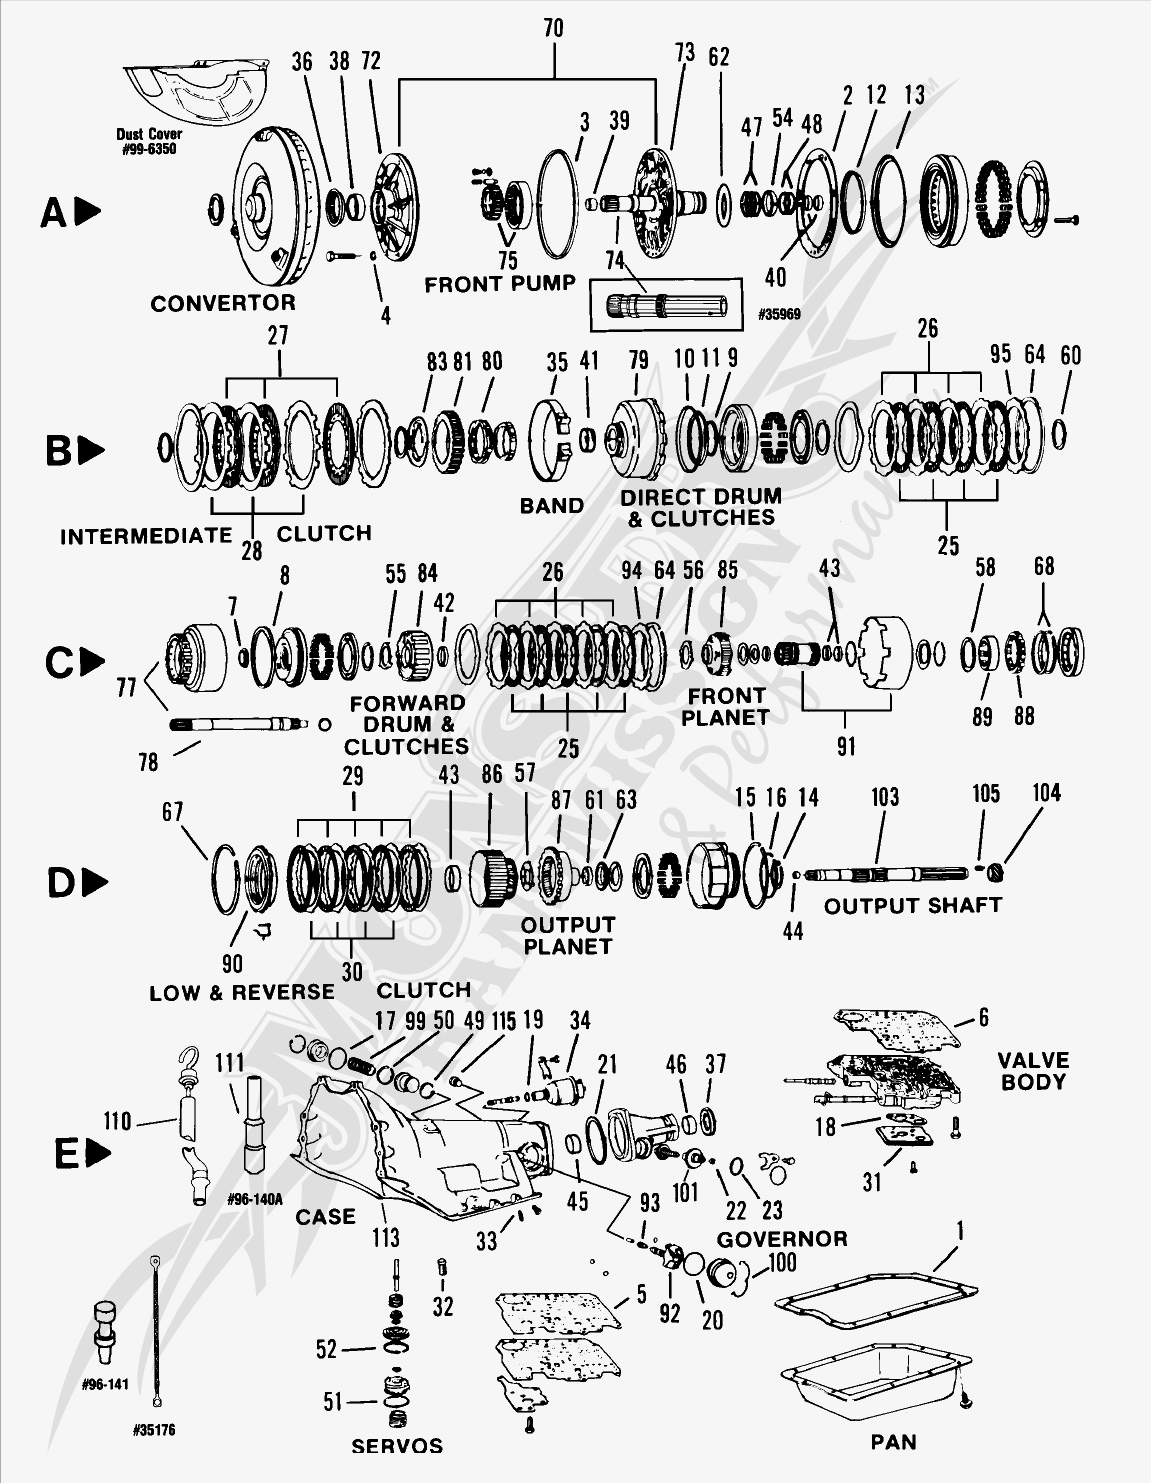 Chevy 3100 Engine Diagram likewise TH 350C c 5188 likewise Dodge Dakota 2003 Dodge Dakota Location Of Backup Light Switch further 6k9y5 Ford Explorer 4x4 Need Wiring Diagram Includes Control furthermore DZ4h 18563. on pictures of a 2002 pontiac grand am transmission